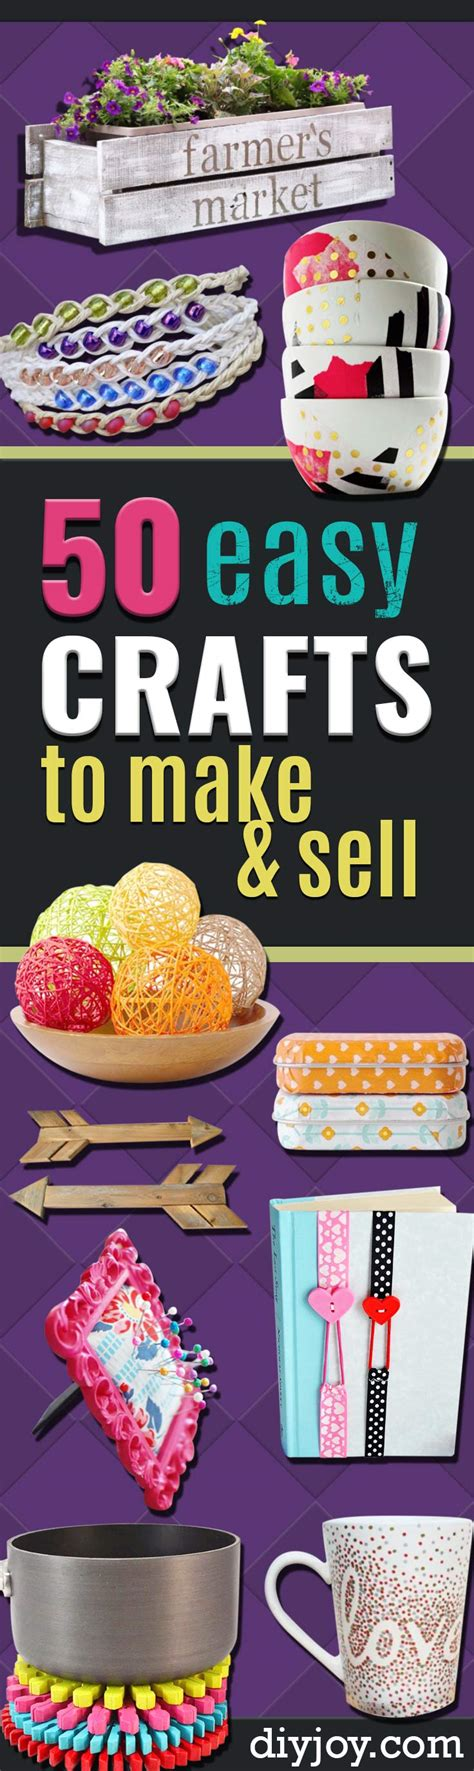 easy craft ideas for to sell 50 easy crafts to make and sell crafts craft